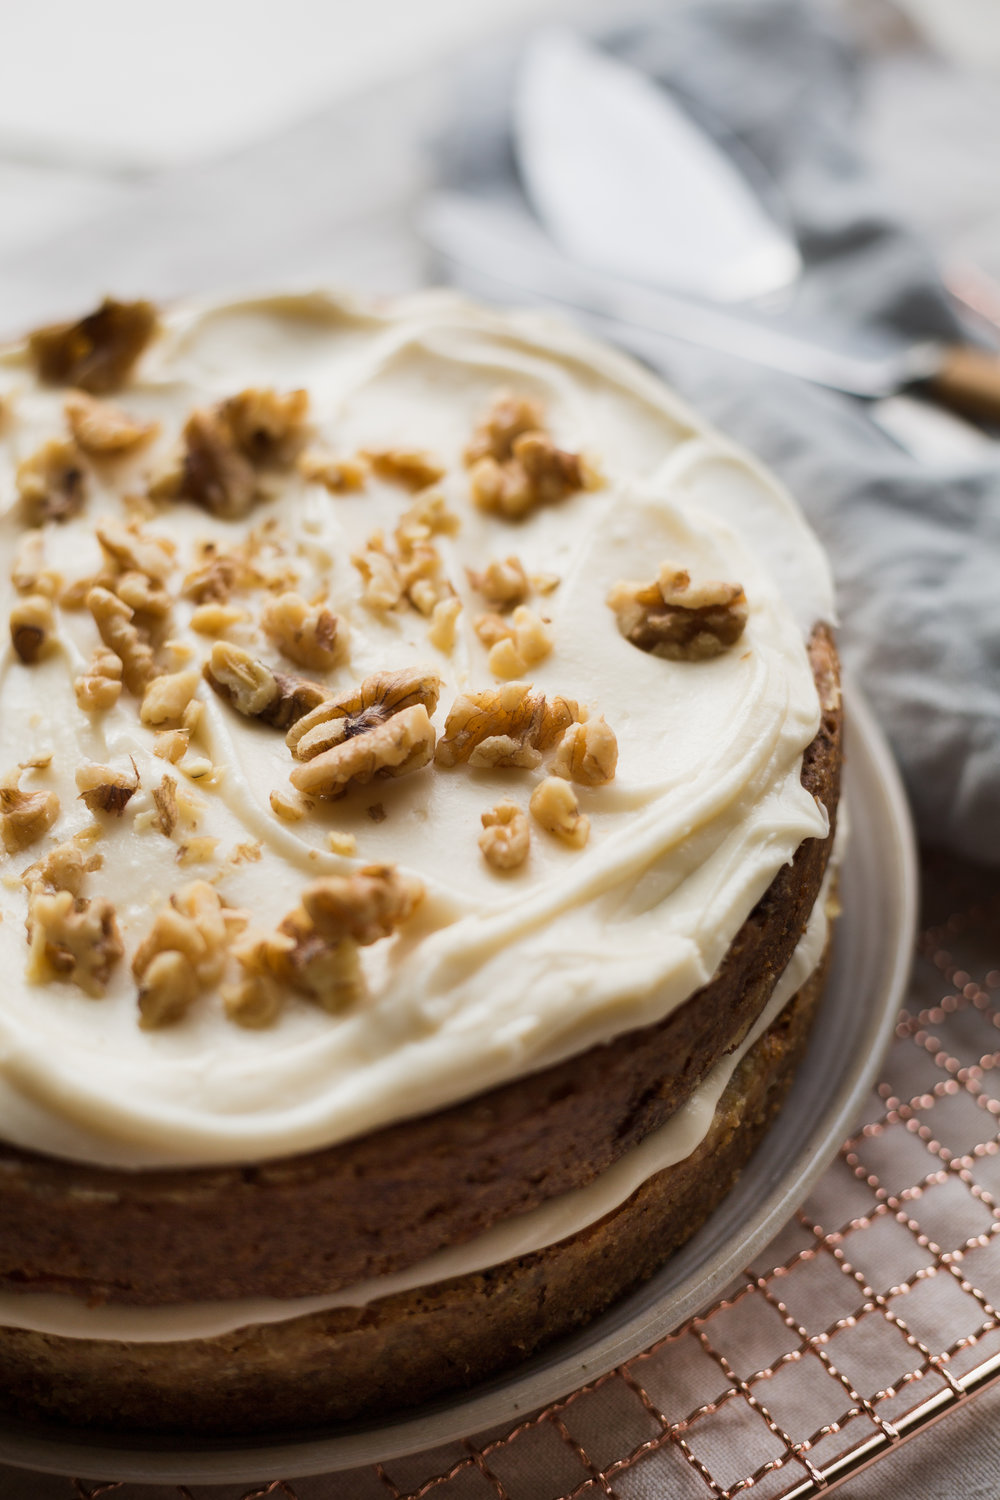 The Most delicious carrot cake you'll ever taste!